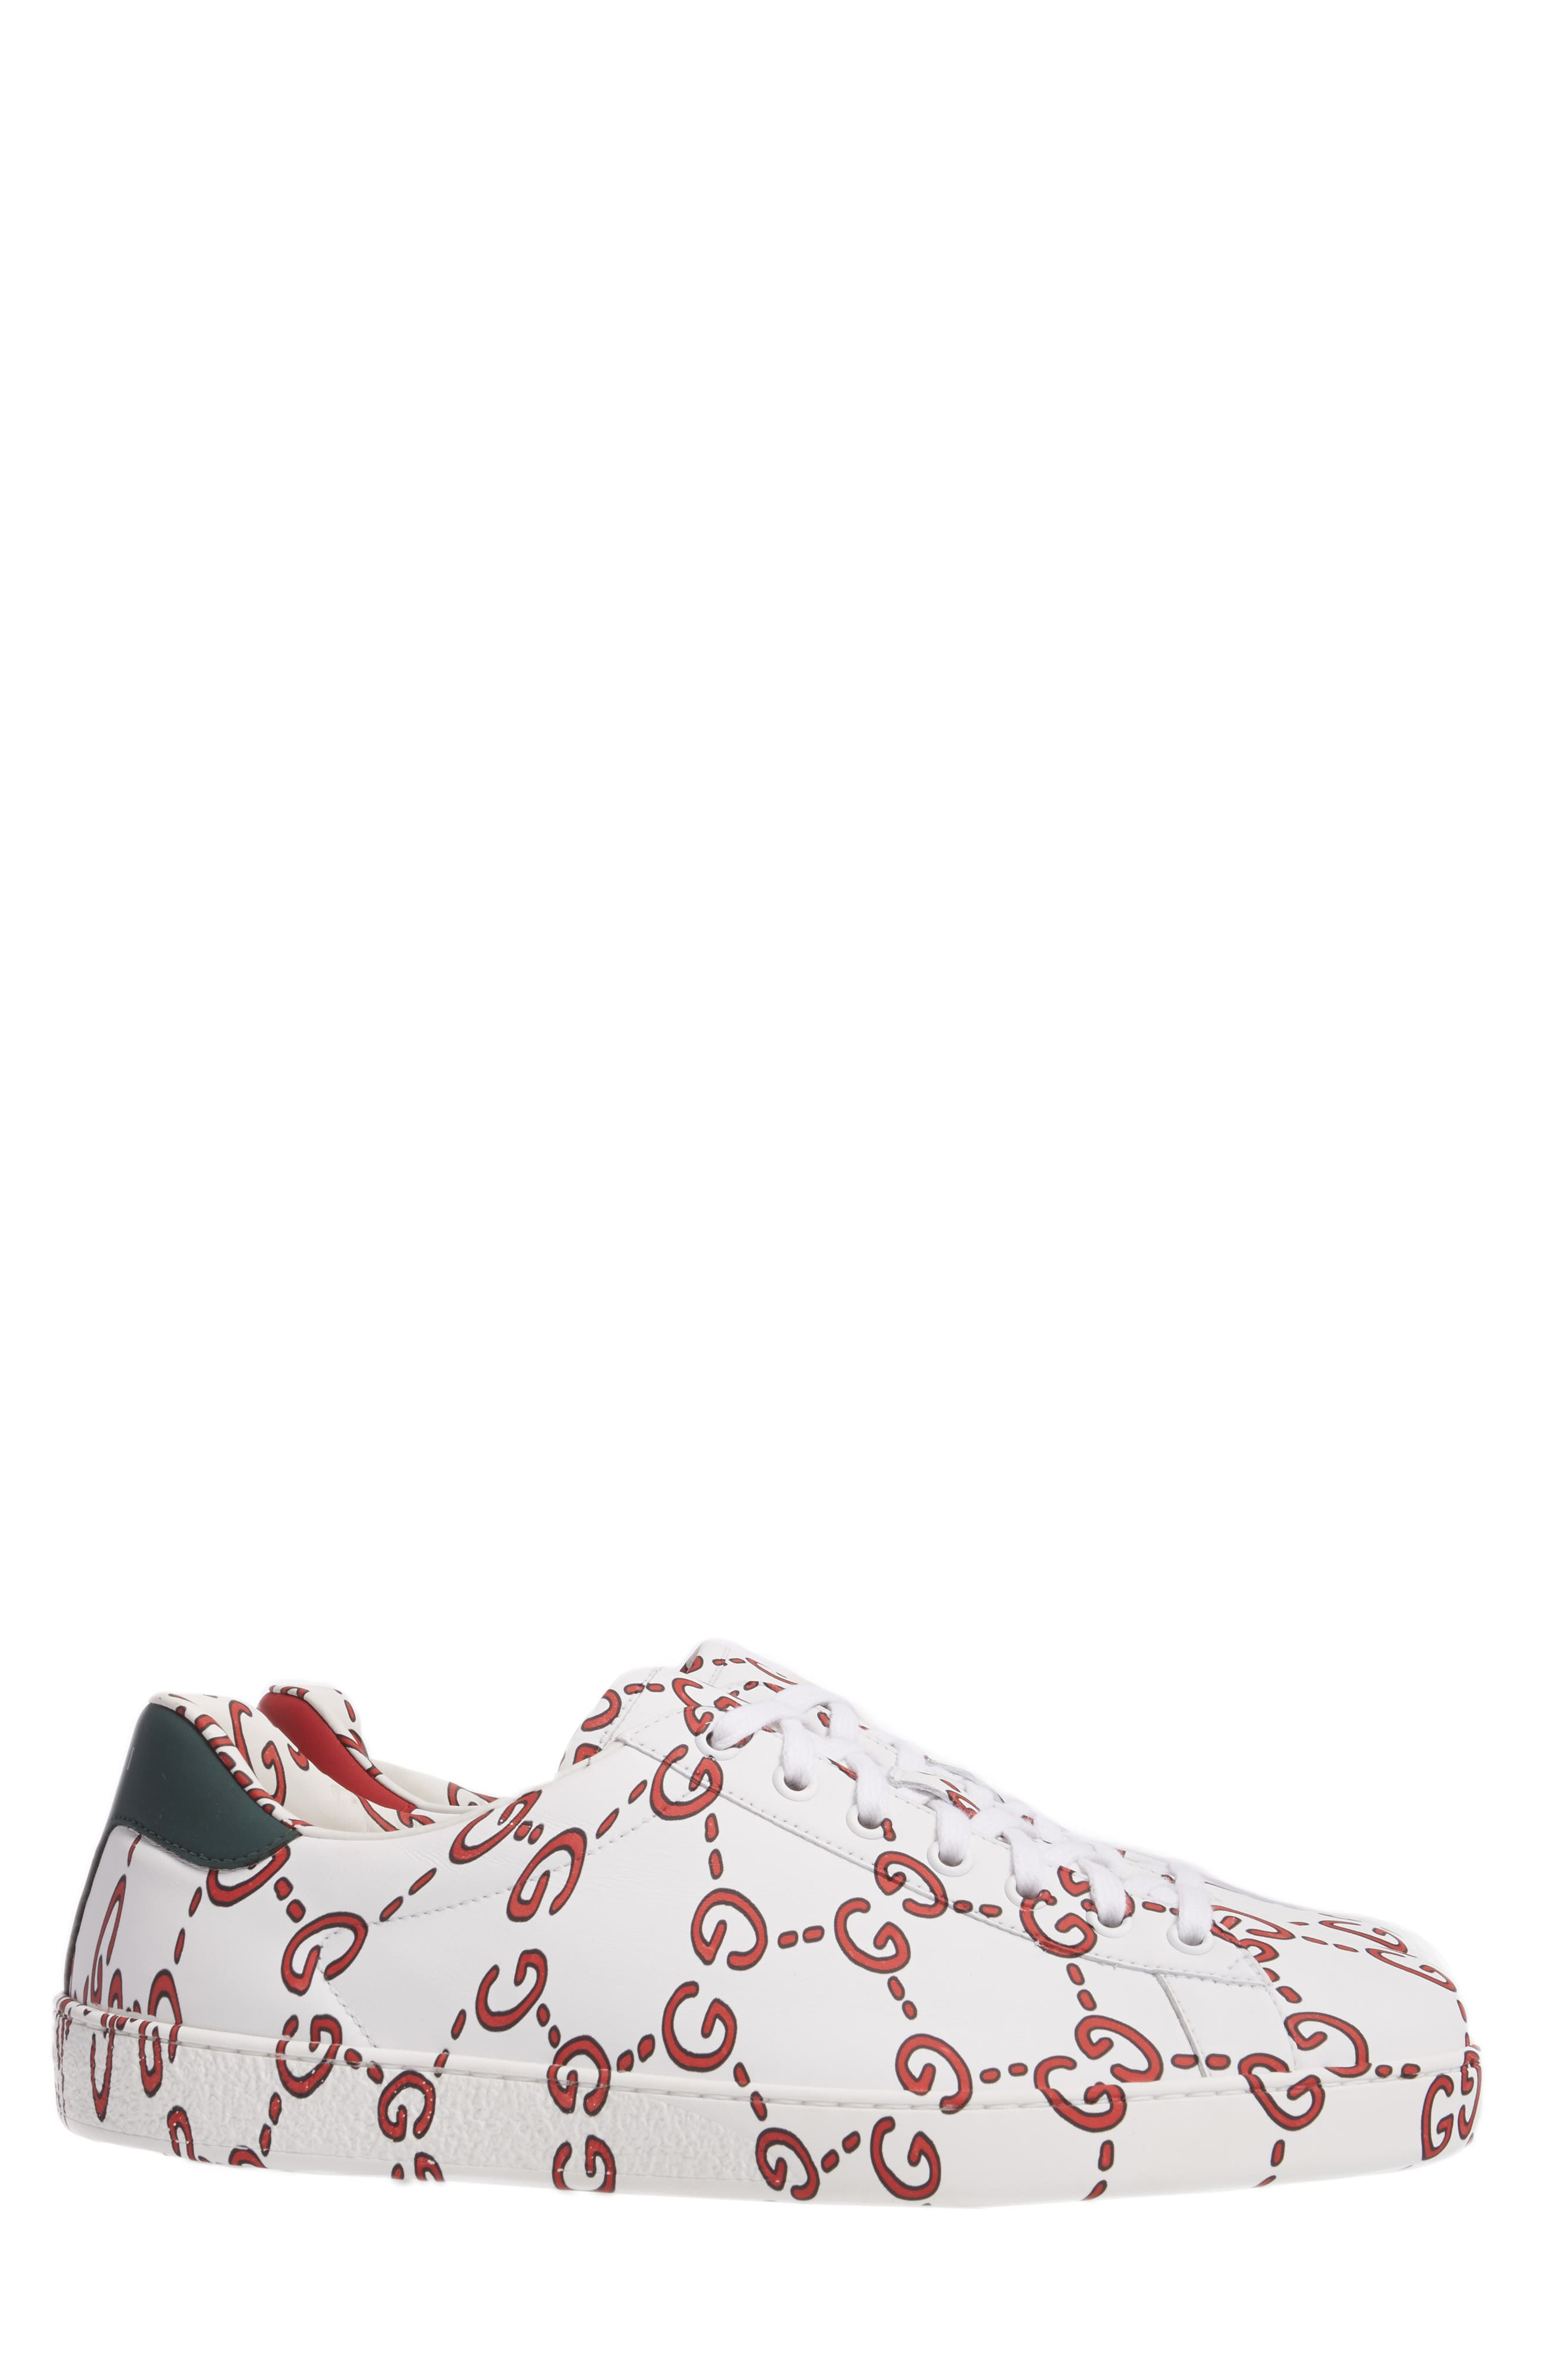 GUCCI, New Ace GG Print Sneaker, Alternate thumbnail 3, color, WHITE